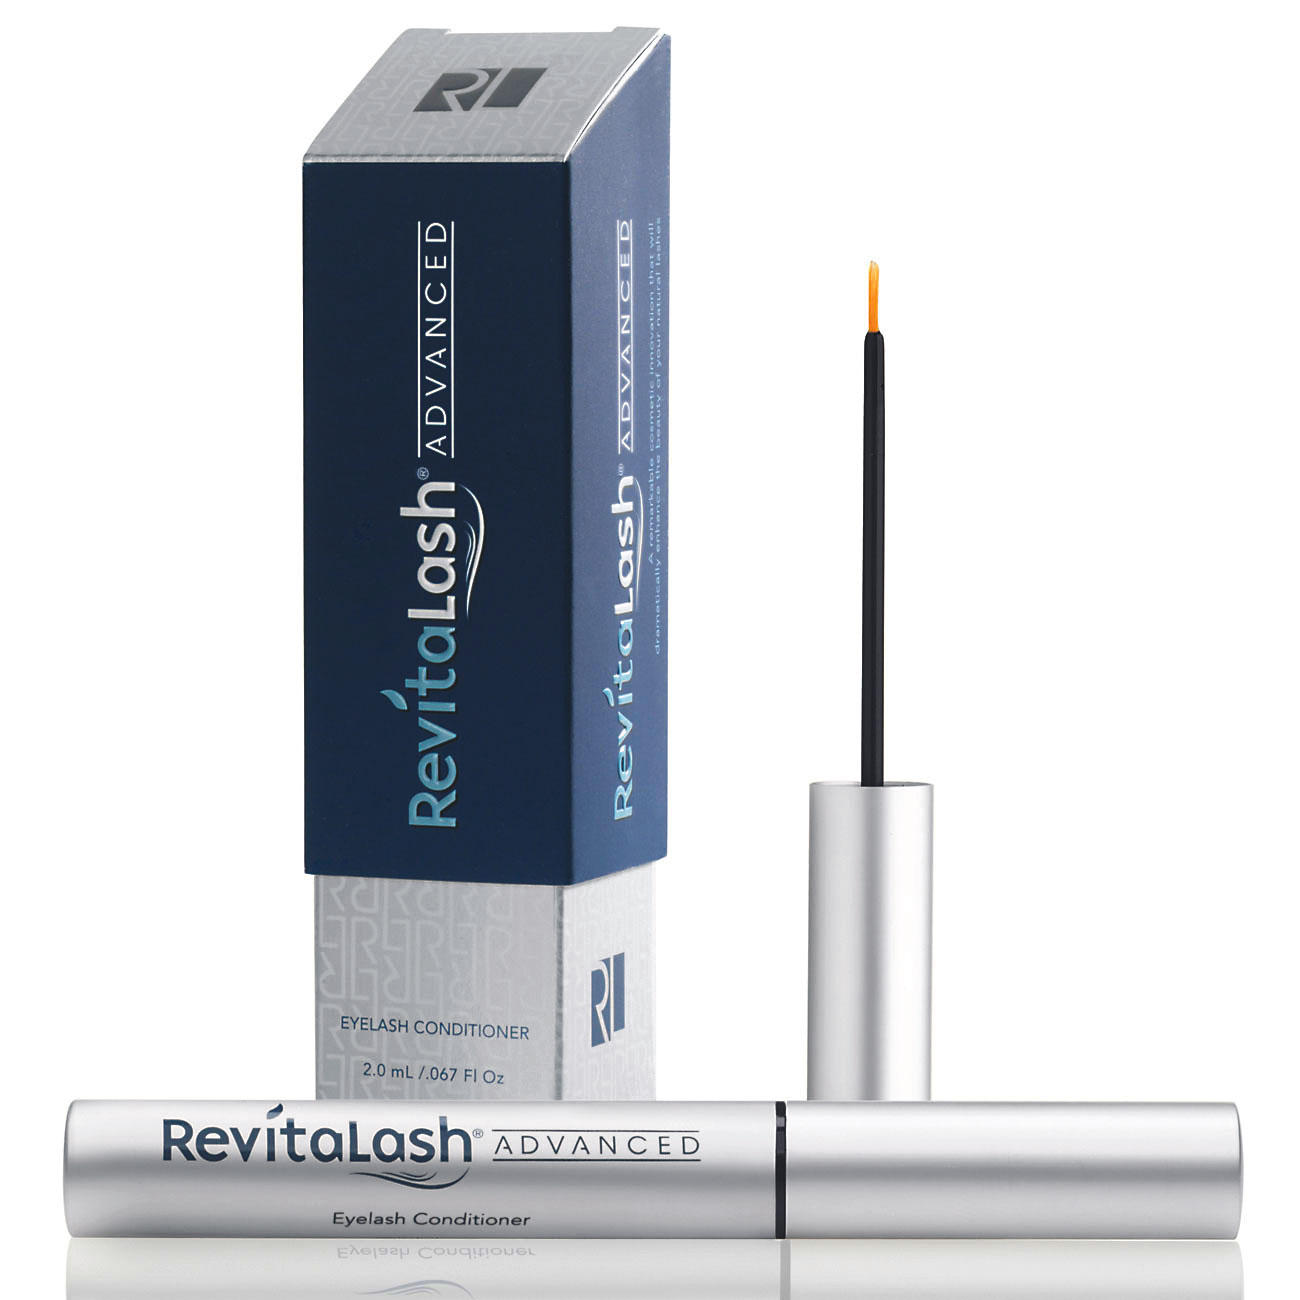 RevitaLash Advanced Eyelash Conditioner Wimpernserum 2ml